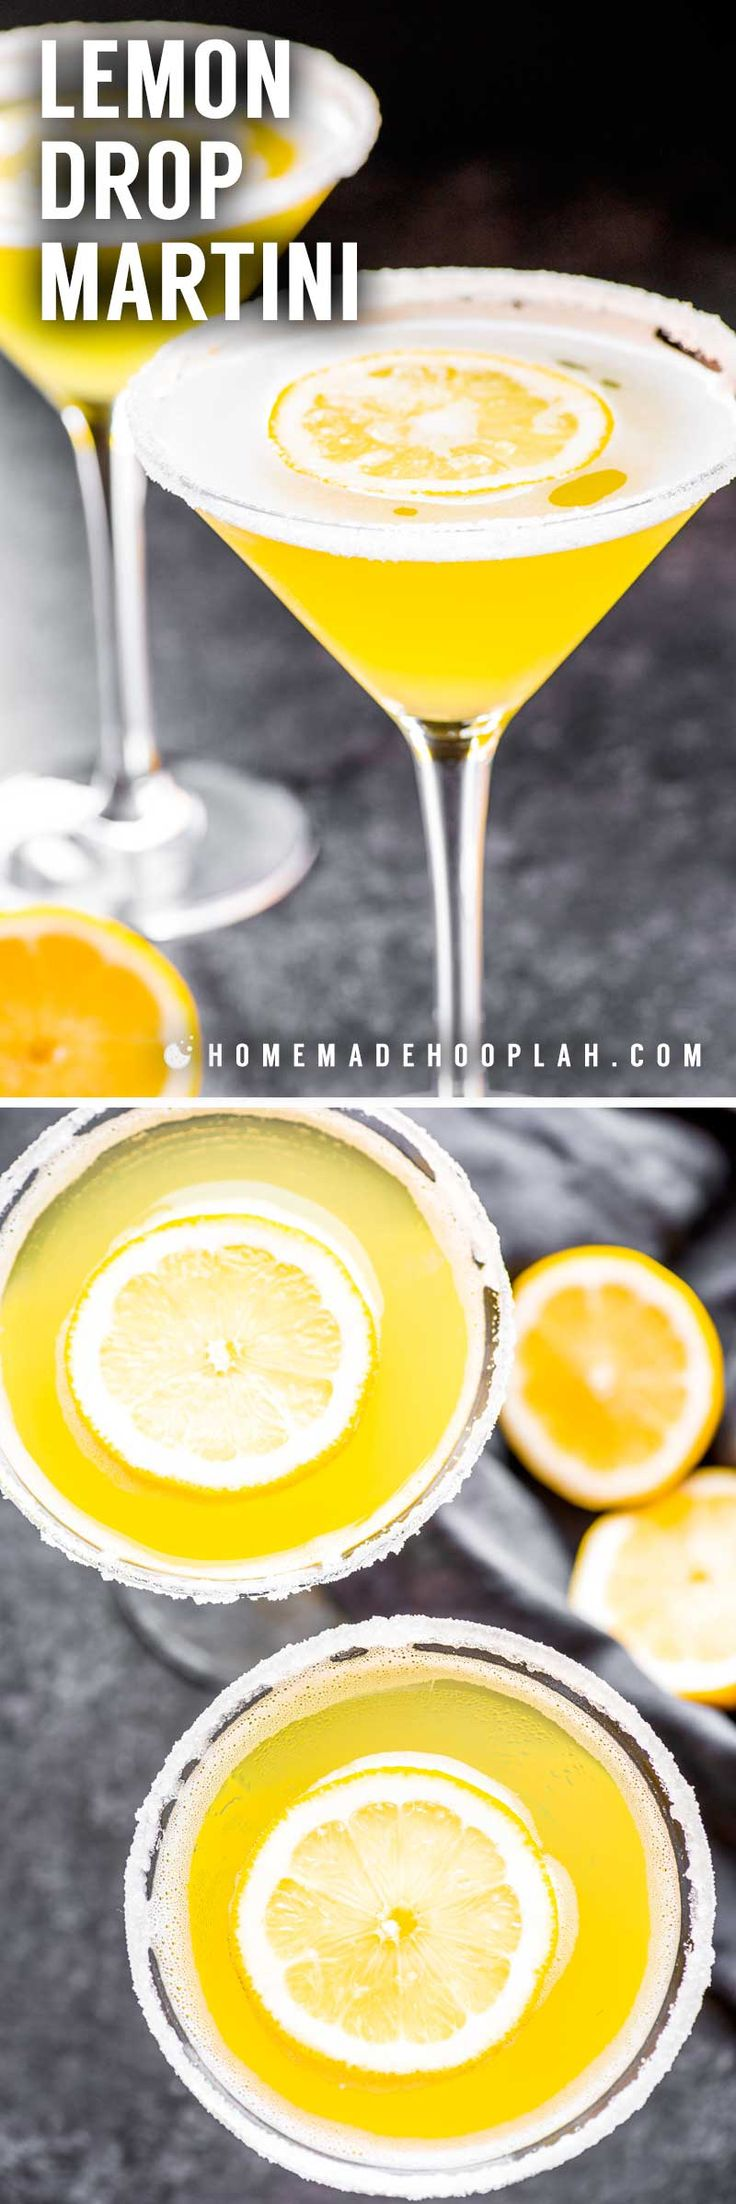 Lemon Drop Martini! A deliciously sweet lemon martini made with limoncello, vodka, sweet and sour mix, and a dash of lemon. Dress it up with lemon-flavored sugar along the rim! | HomemadeHooplah.com